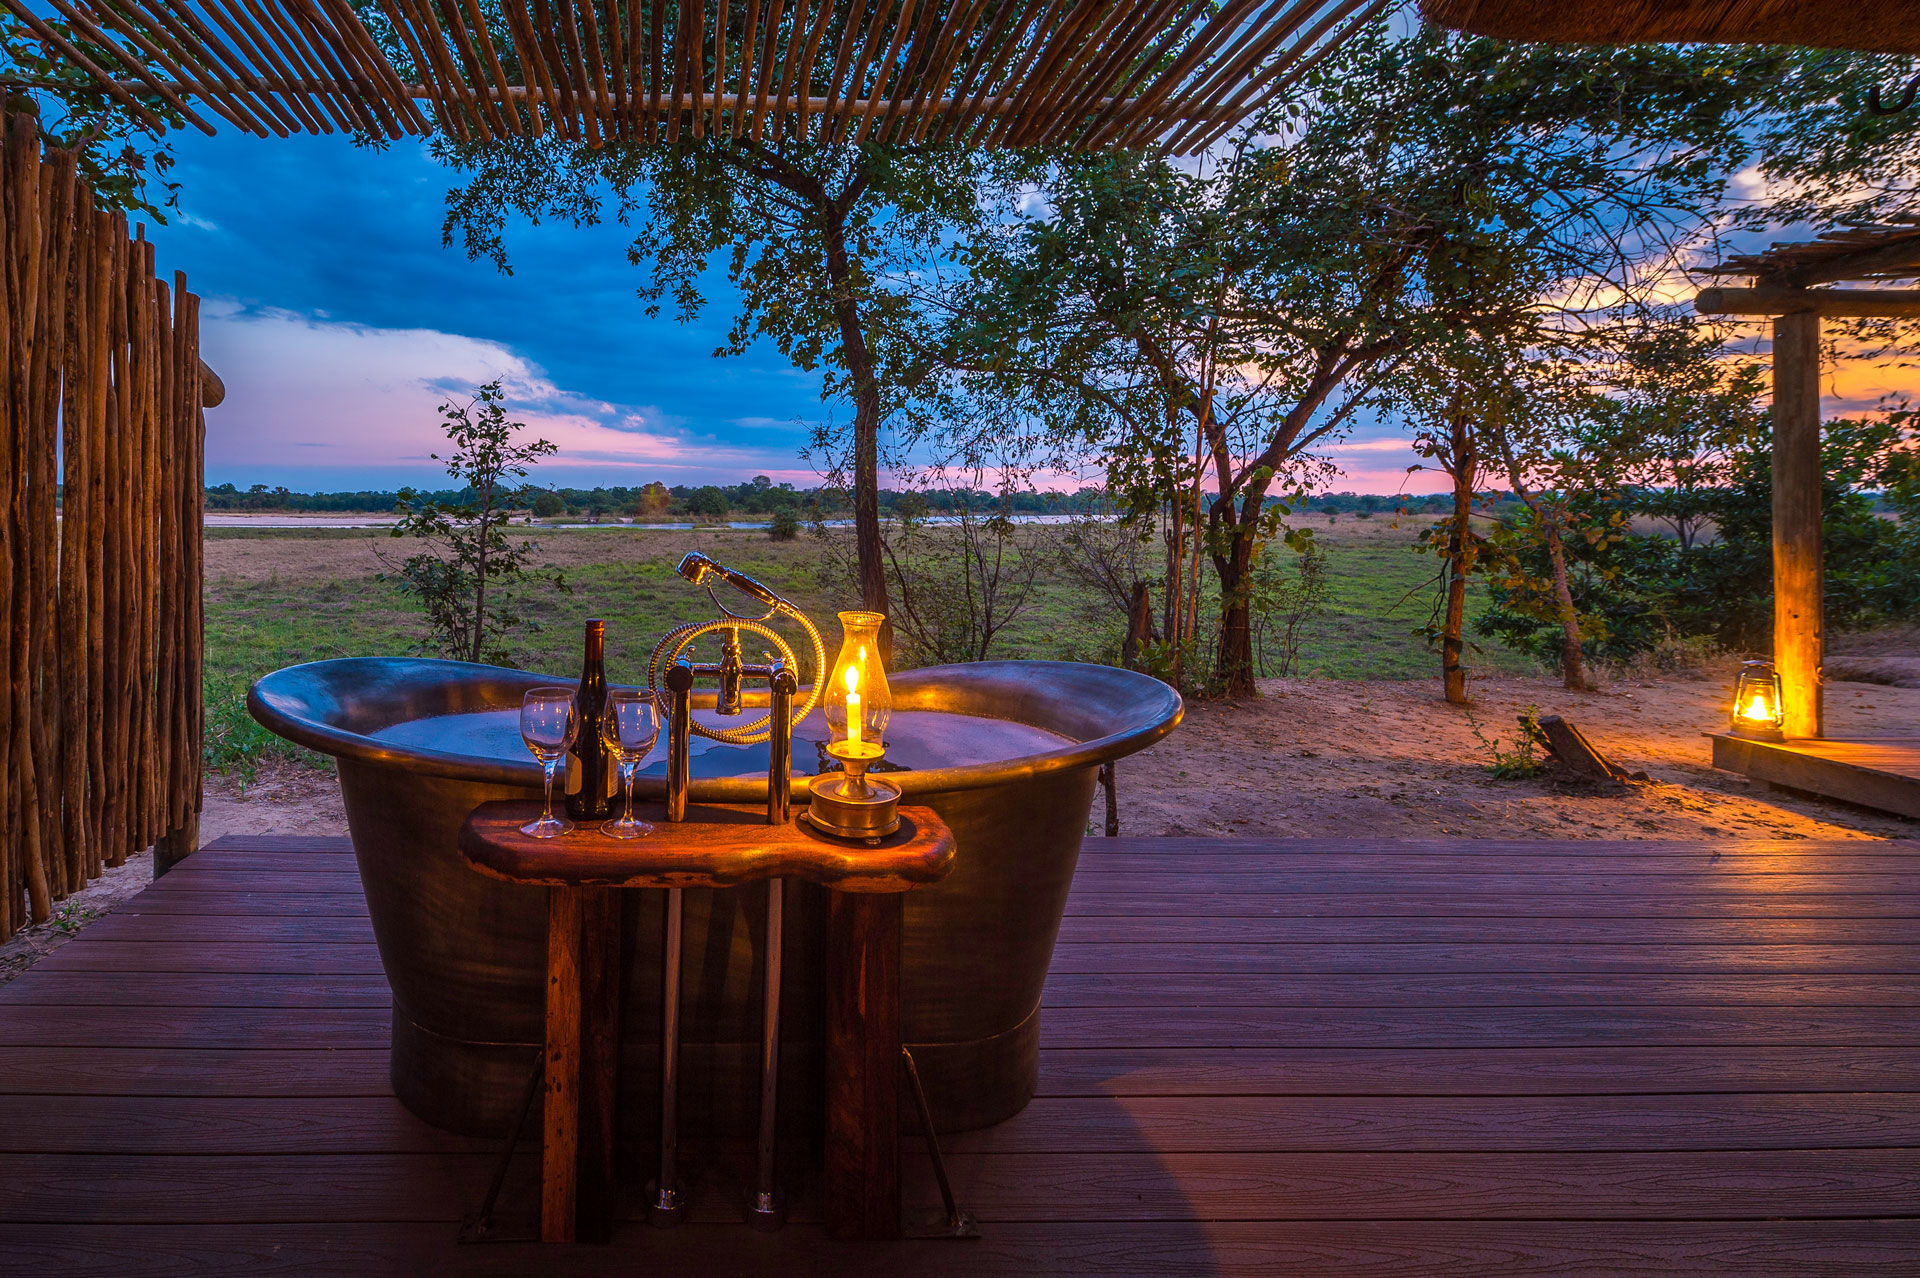 Zungulila - South Luangwa National Park - Zambia